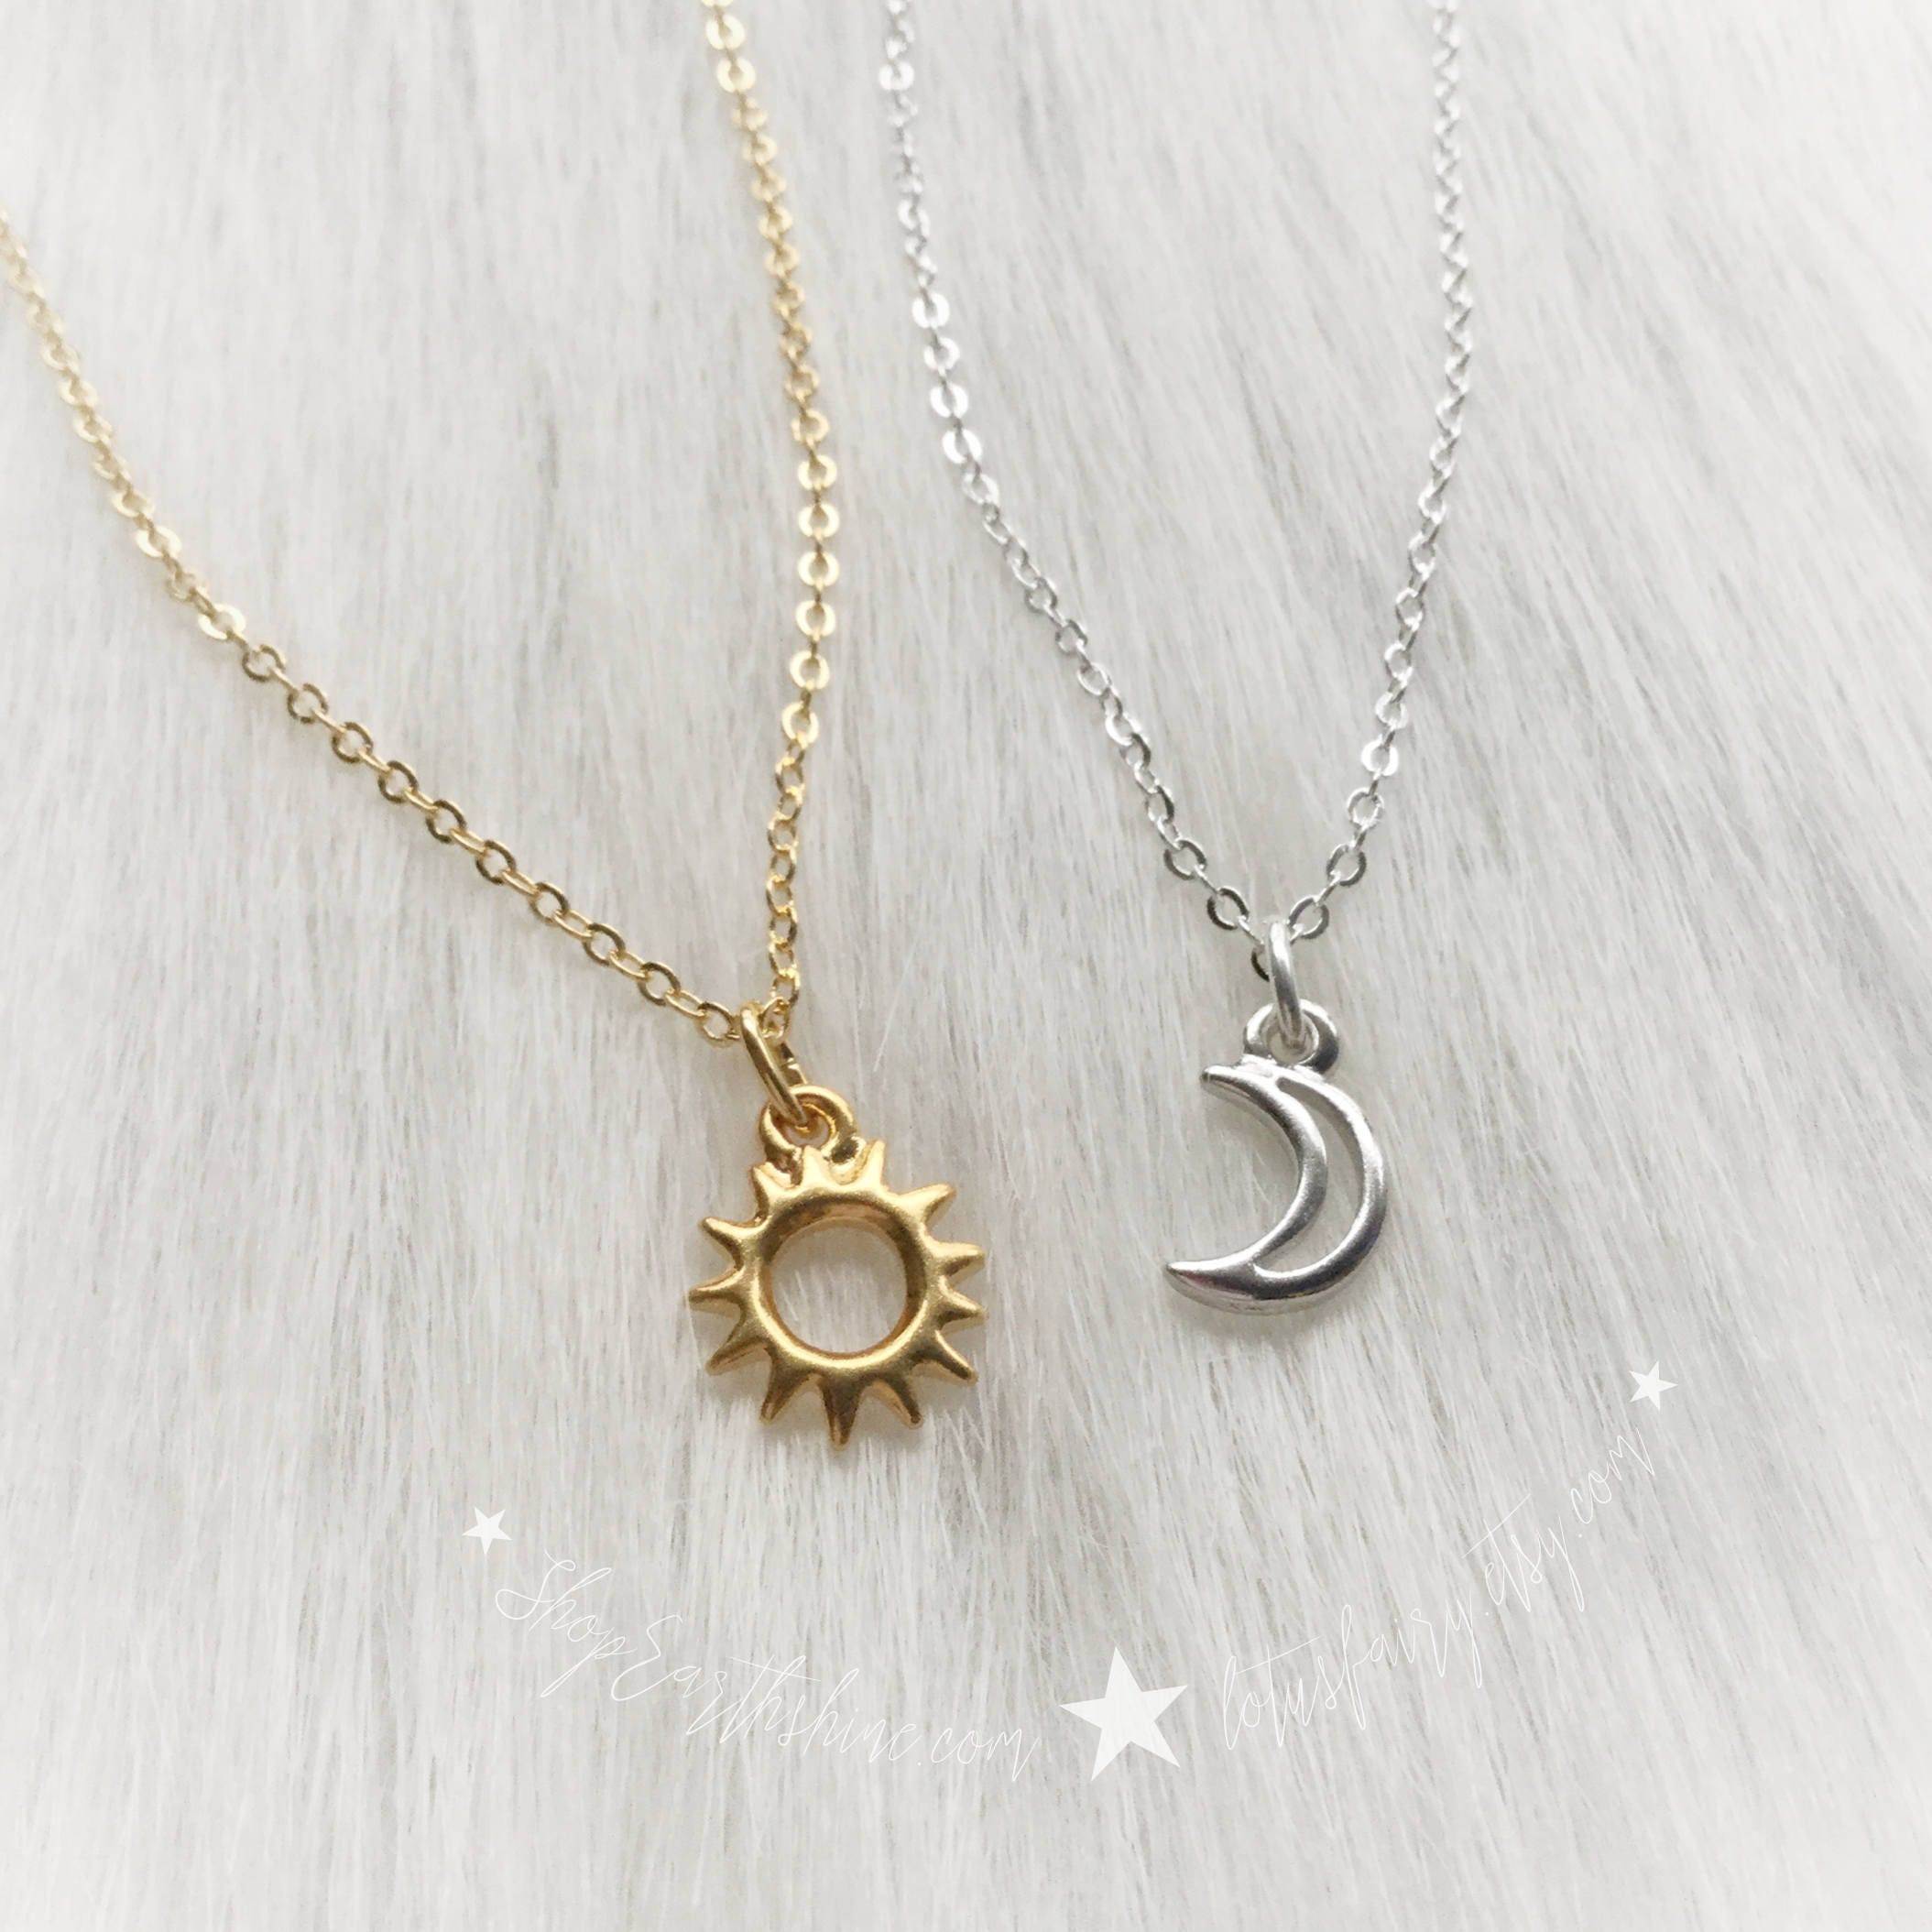 pendant n gregorio necklace in moon pearl sunmoon gold sun yellow di jewels single lia taglio